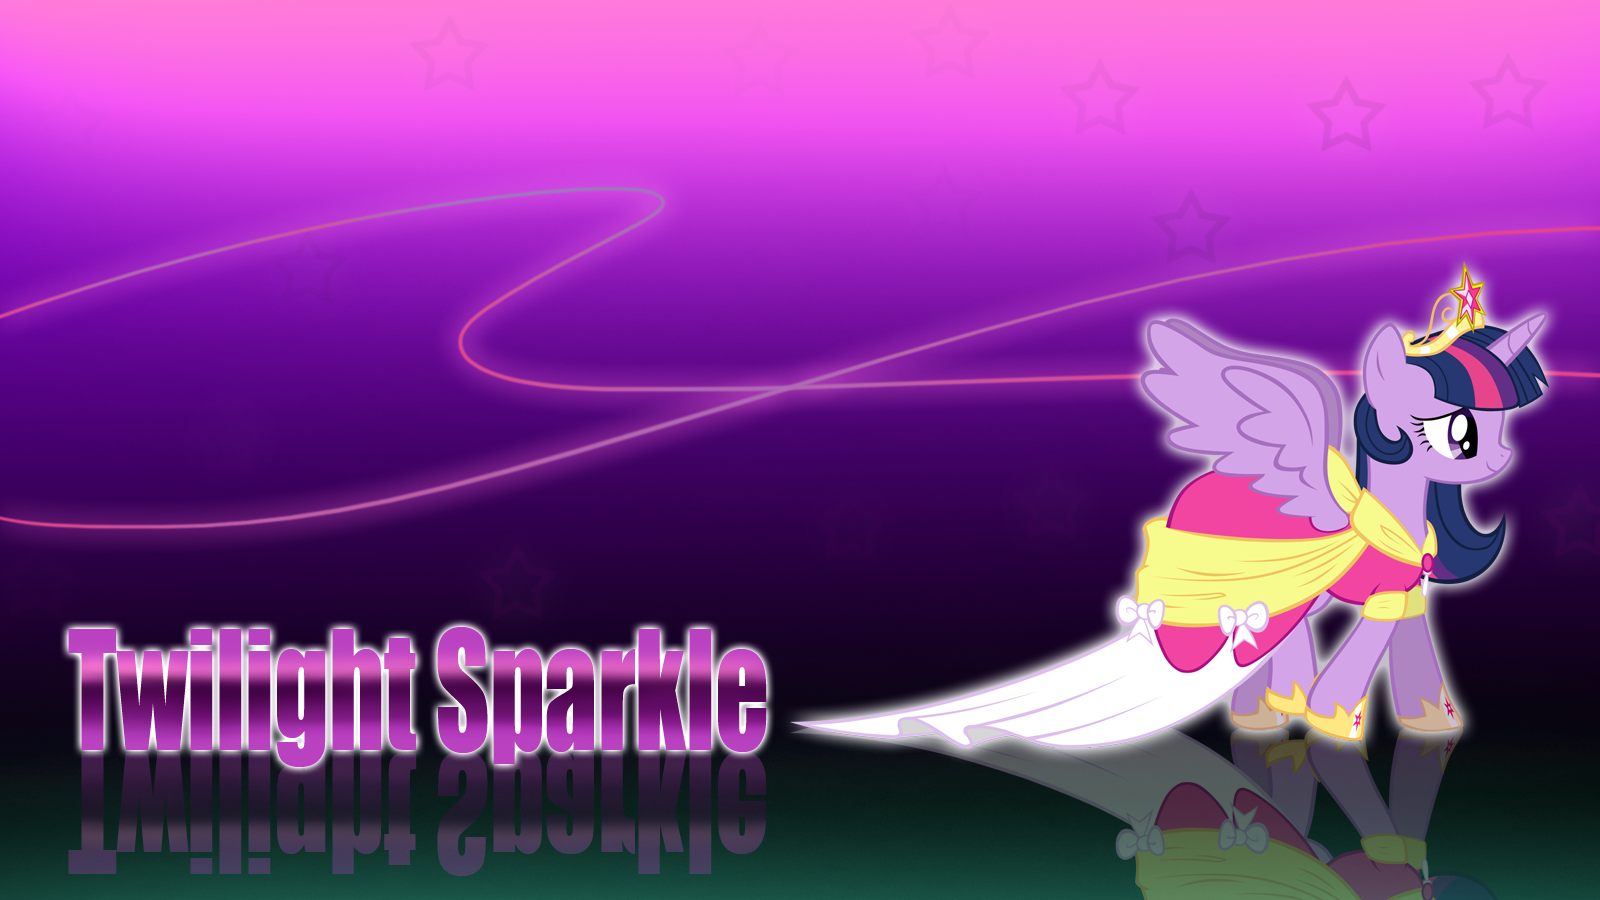 princess twilight sparkle wallpaper cool - photo #3